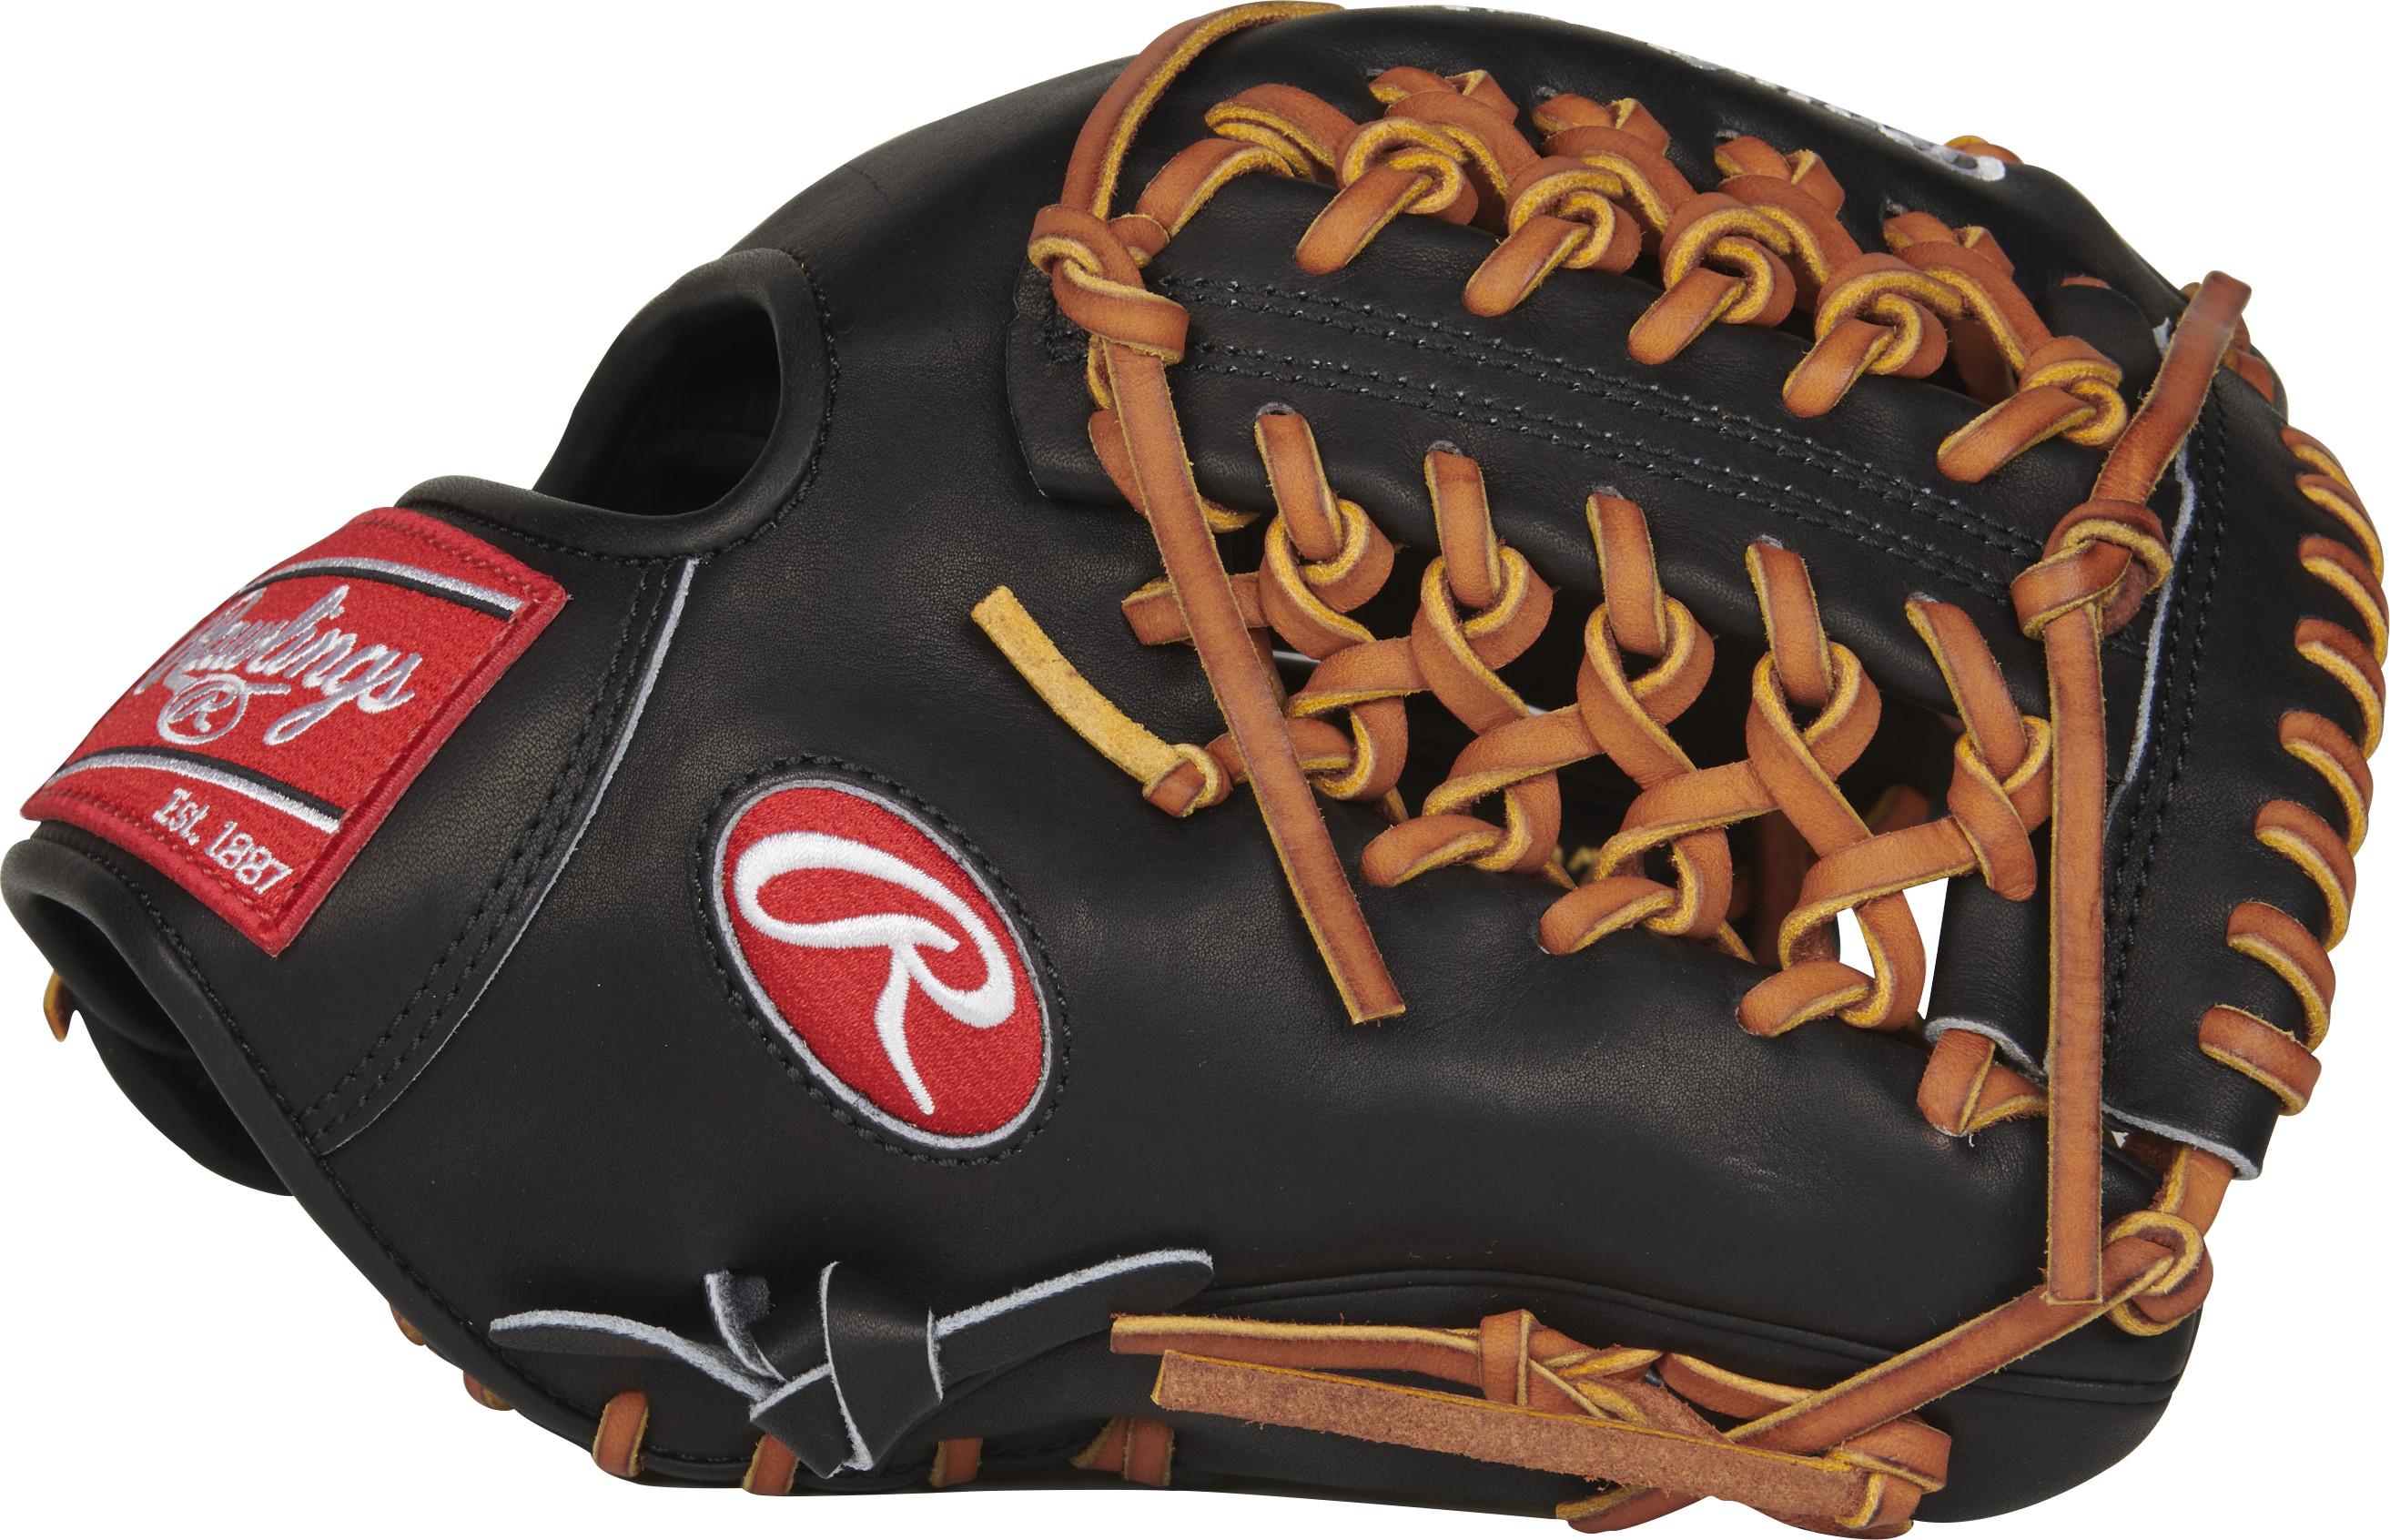 http://www.bestbatdeals.com/images/gloves/rawlings/PRO204-4JBT-3.jpg